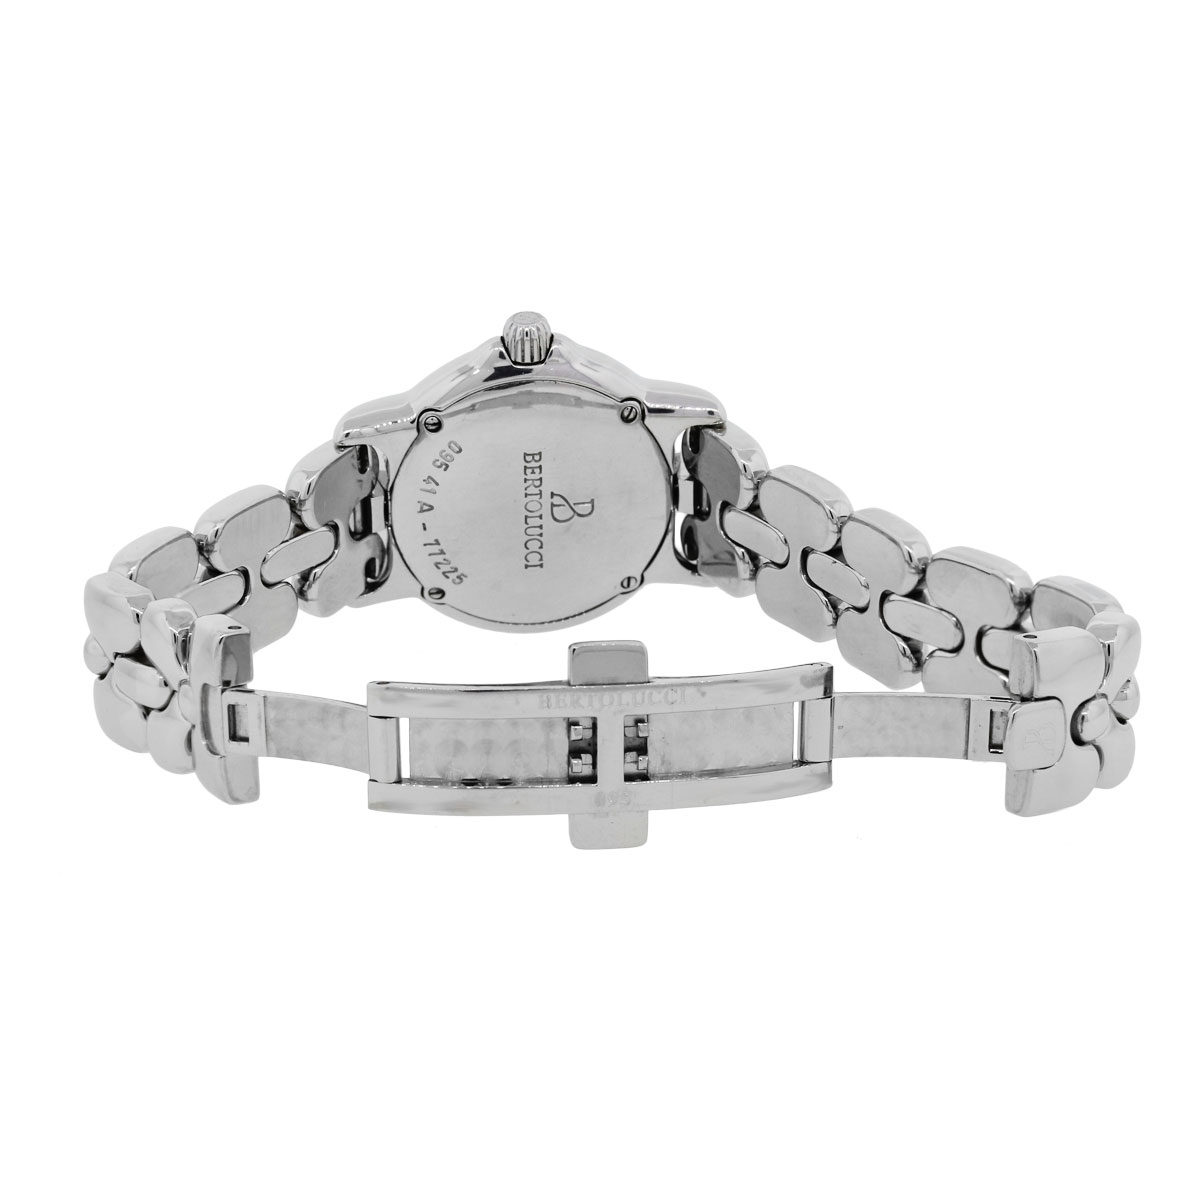 Bertolucci Vir Pearl Diamond Dial Ladies Watch